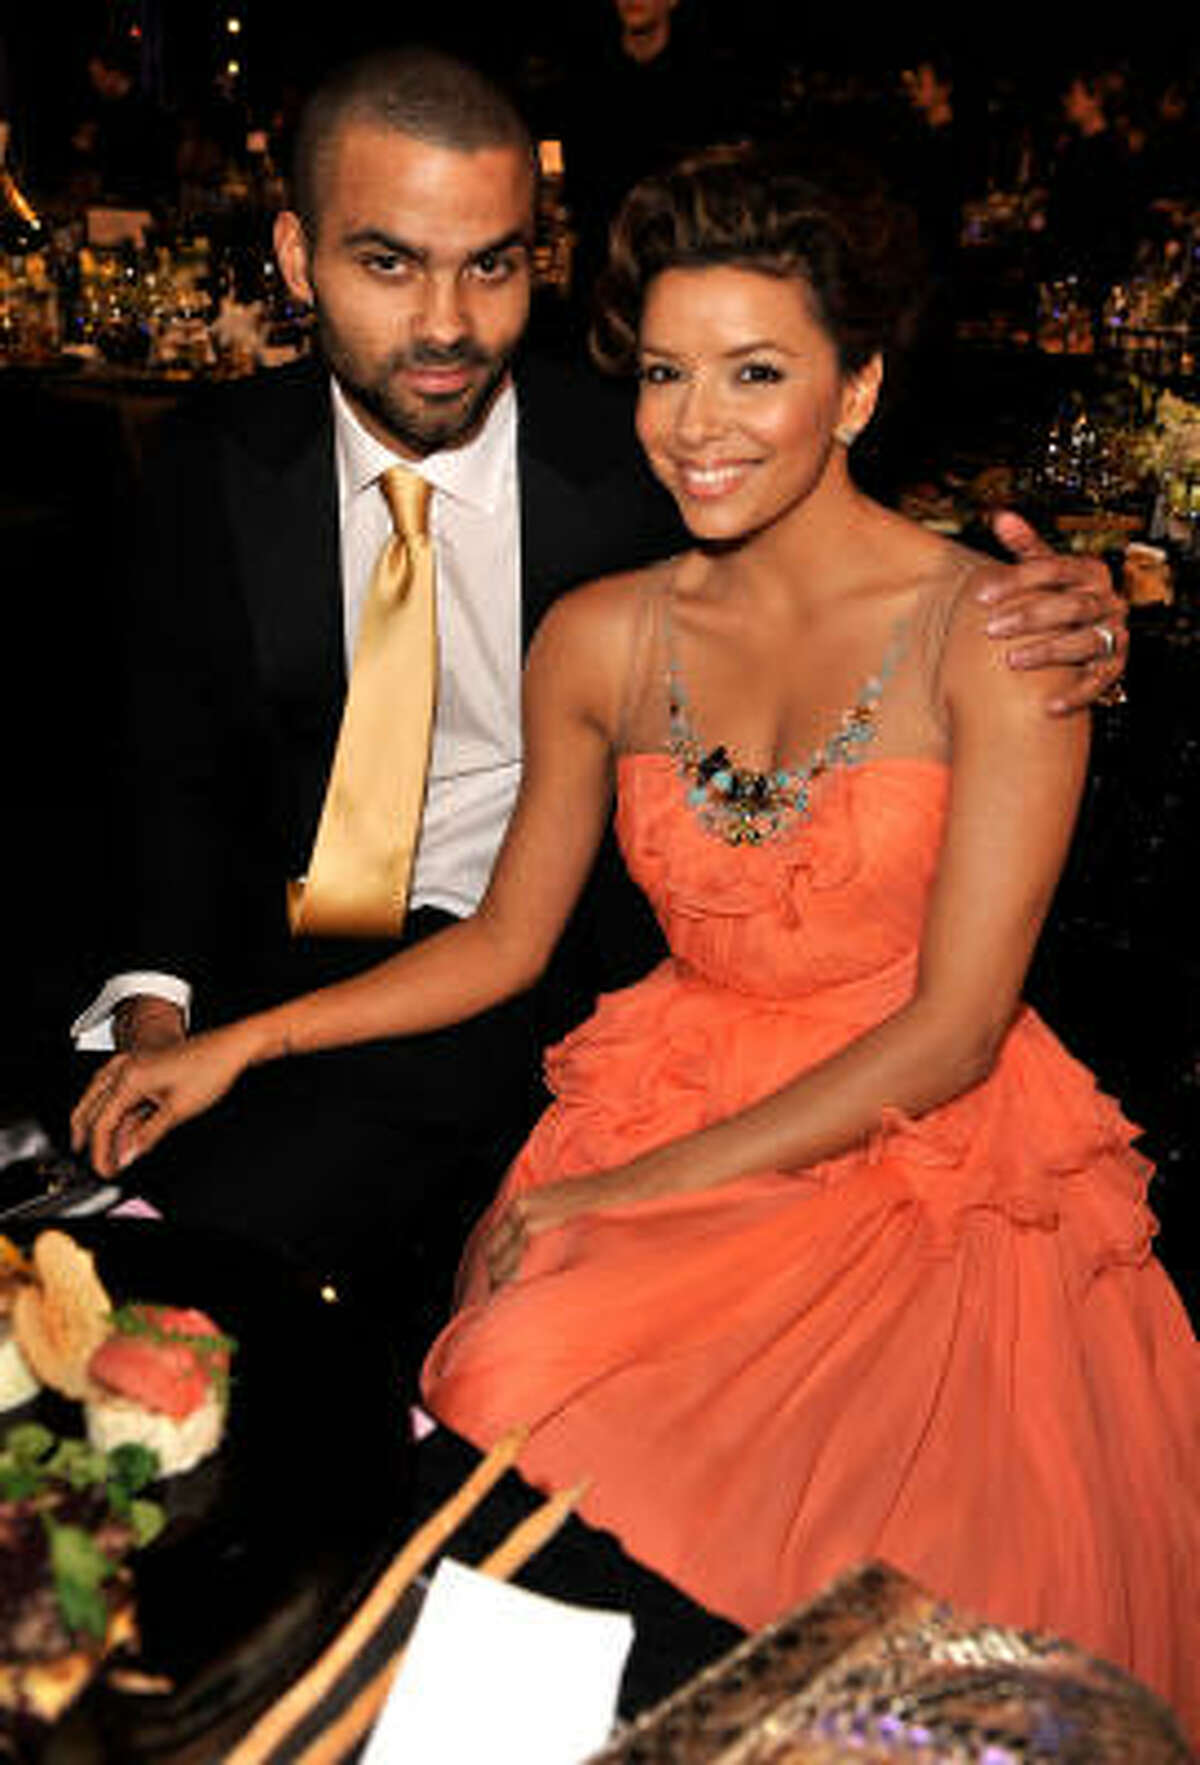 LOS ANGELES, CA - JANUARY 25: Actress Eva Longoria Parker (R) and husband Tony Parker attend the 15th Annual Screen Actors Guild Awards cocktail party held at the Shrine Auditorium on January 25, 2009 in Los Angeles, California.